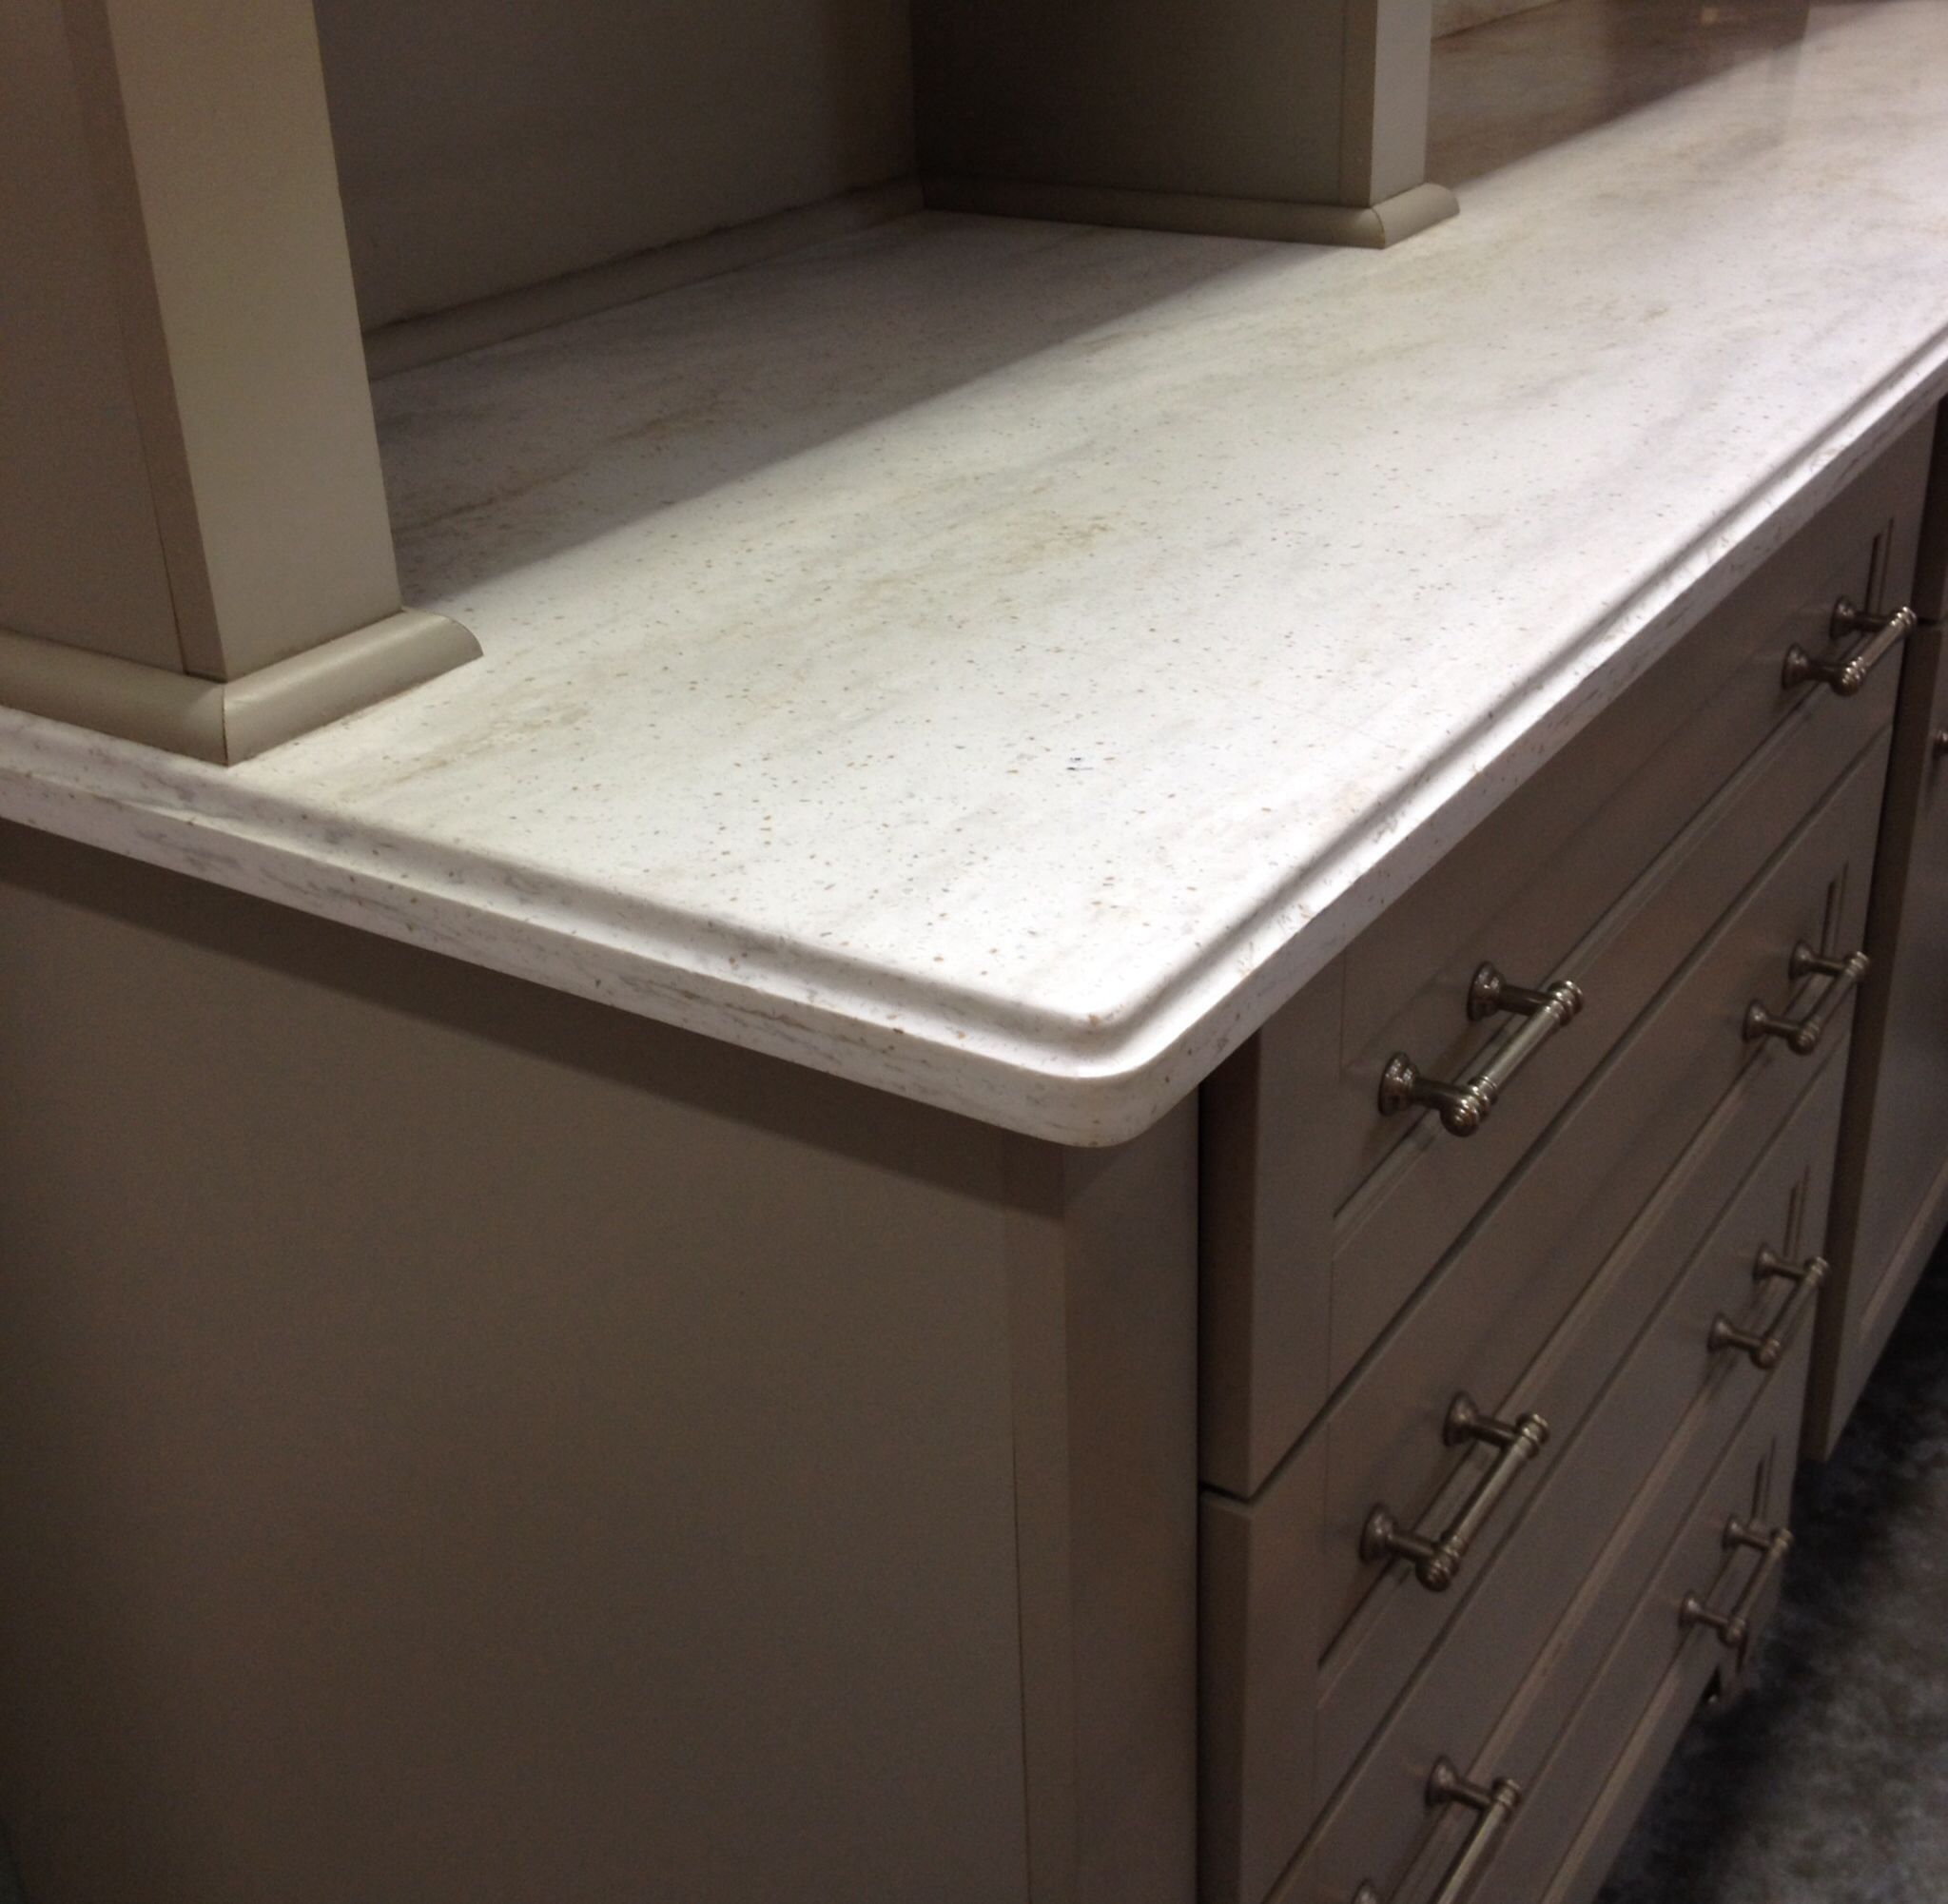 design depot countertop surface island to material price corian ideas interior what colors kitchen for solid is your furniture home remodel countertops fascinating cut how